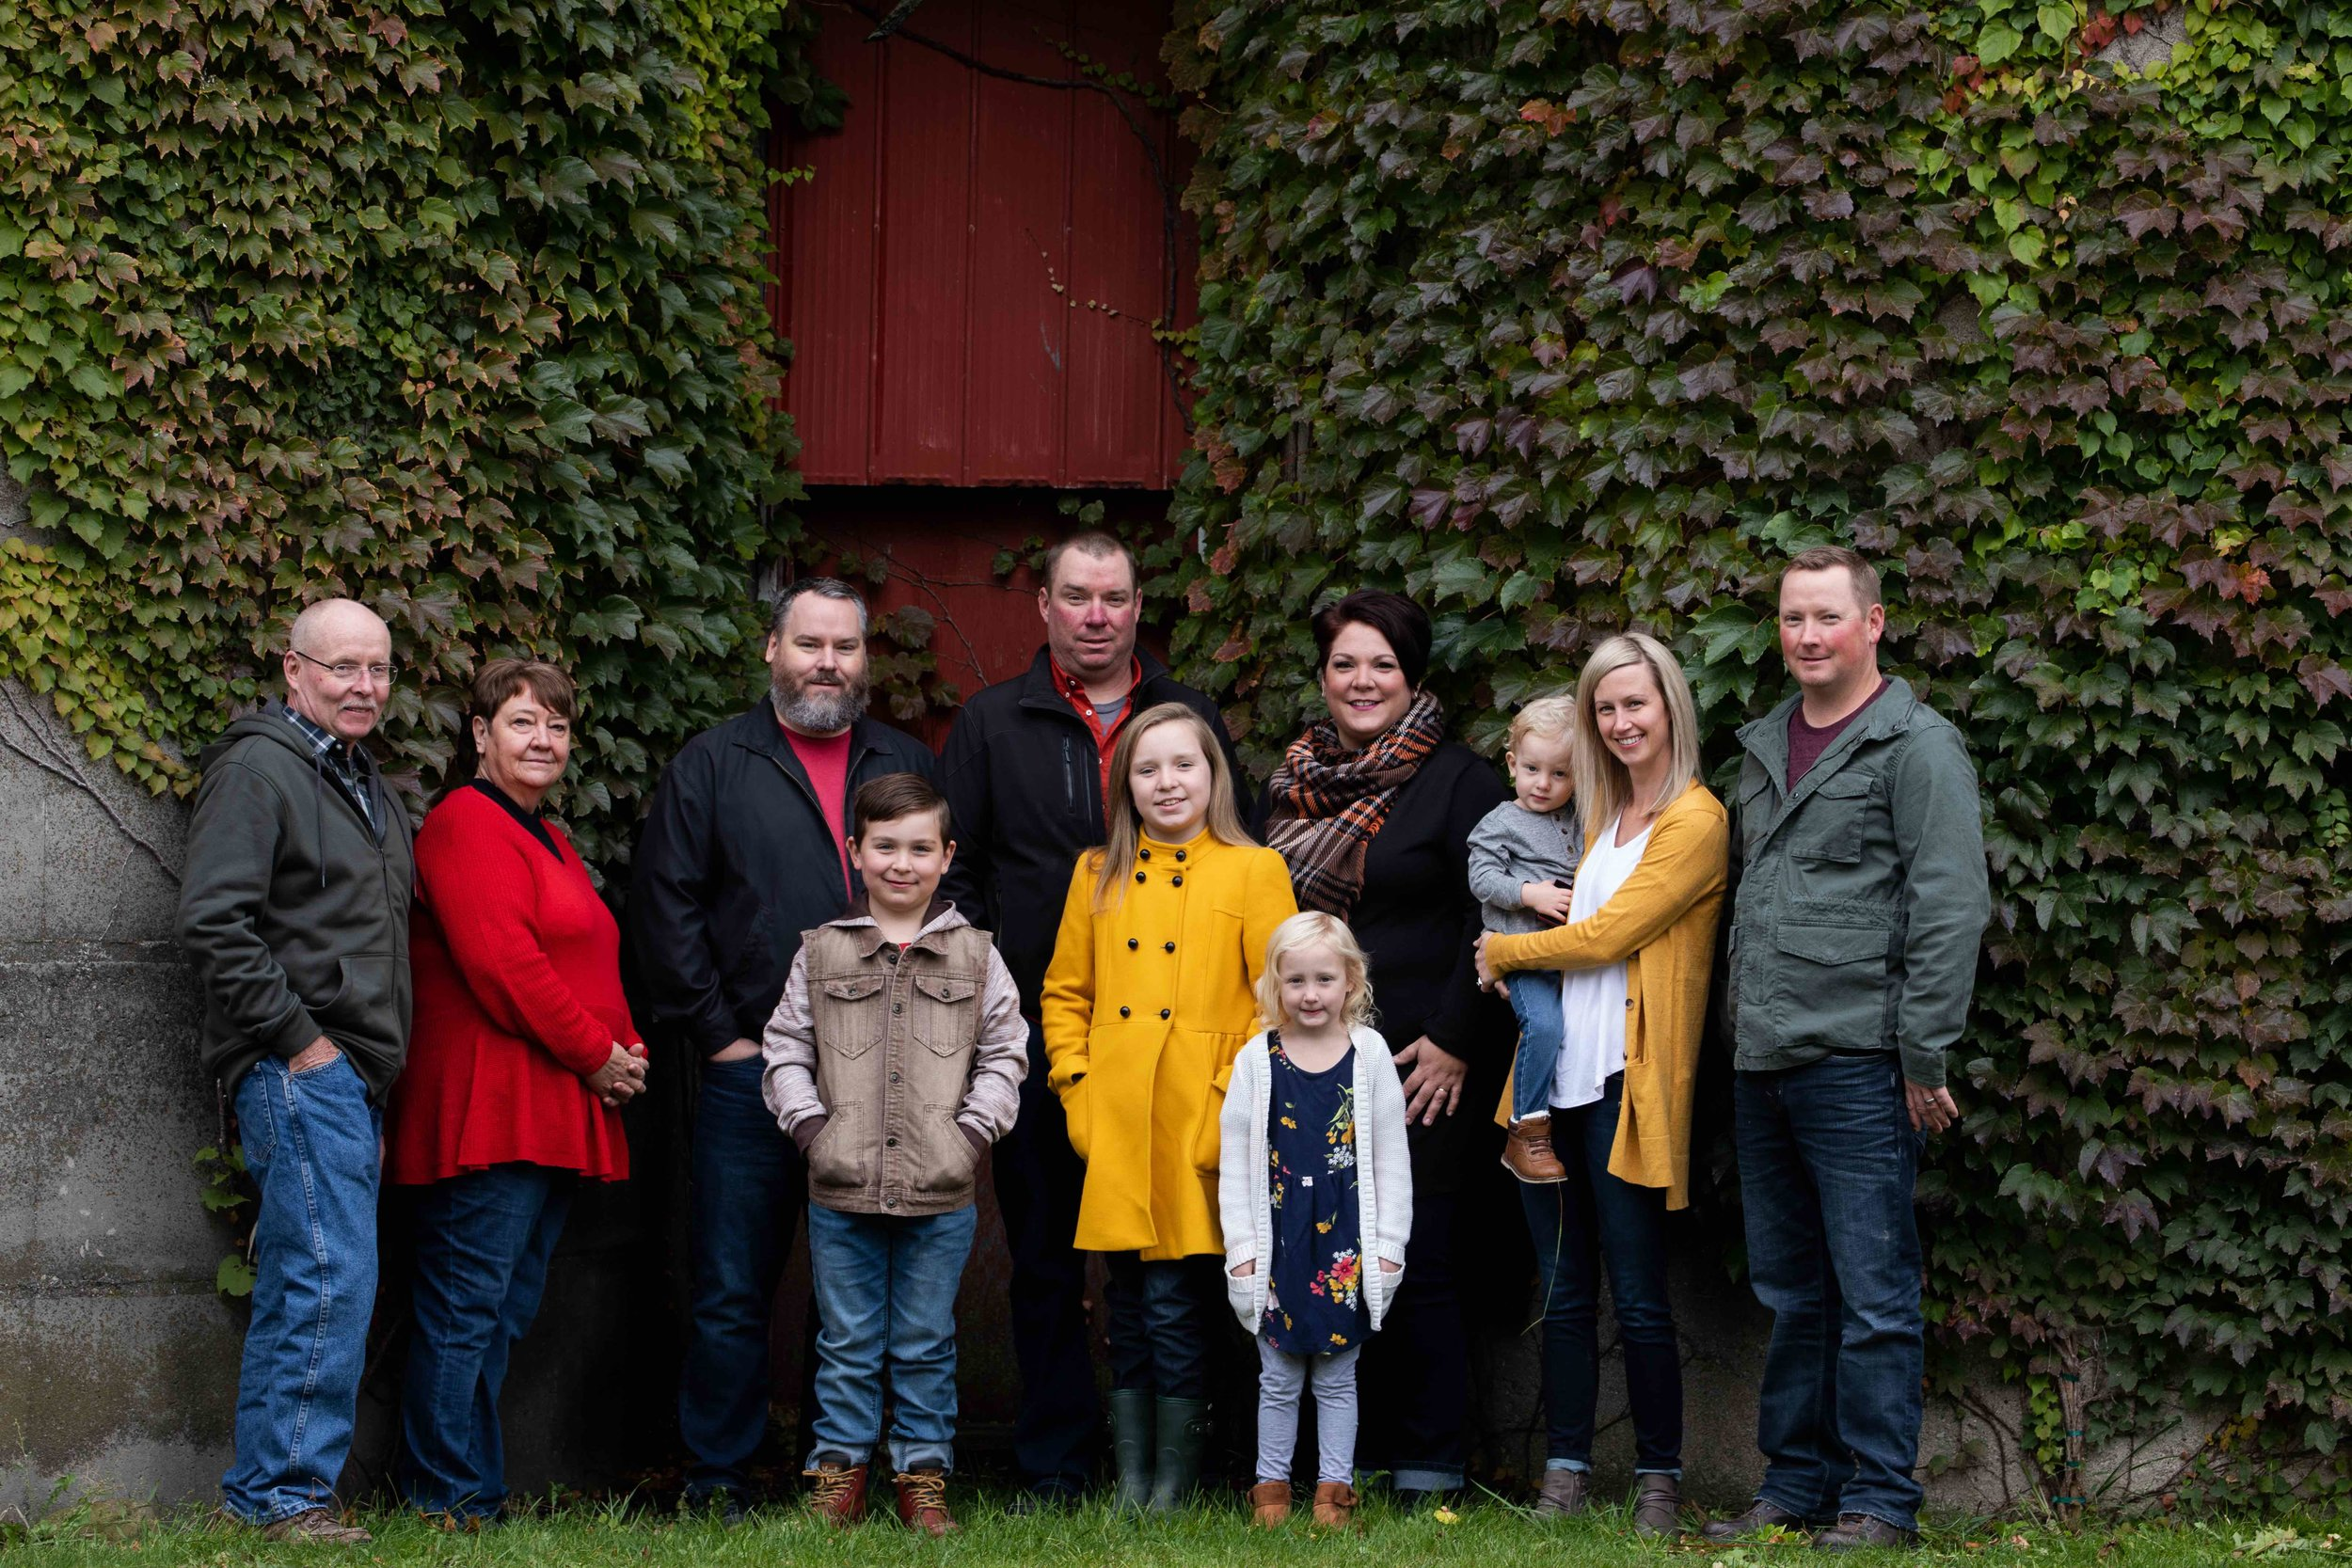 Jodie-Aldred-Photography-Chatham-Kent-Elgin-Middlesex-London-Ontario-Farm-Family-barn.jpg